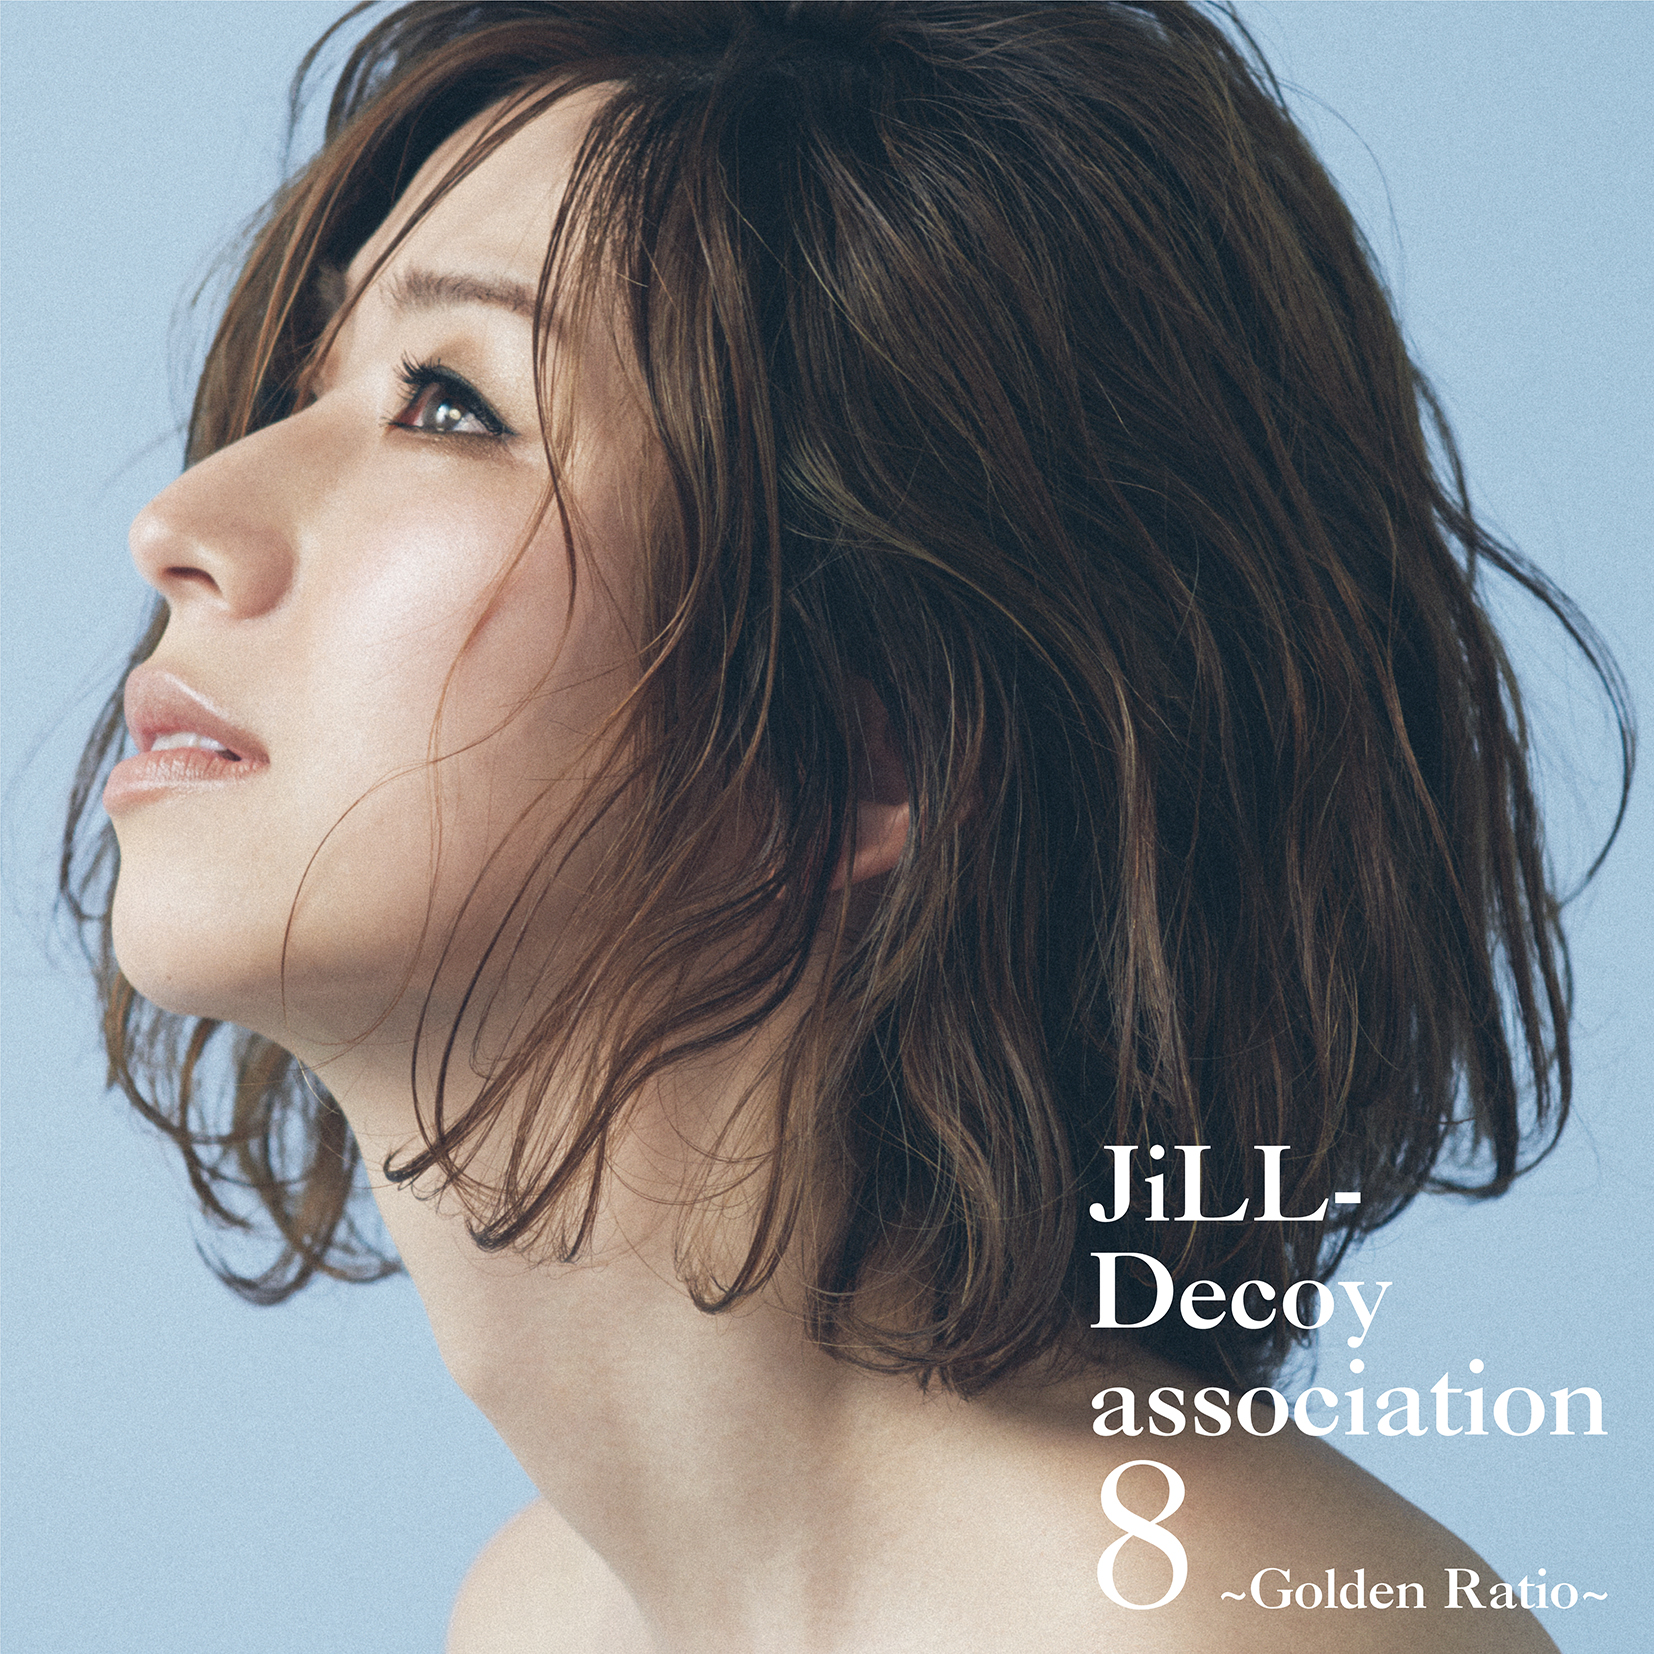 JiLL-Decoy association 「8」